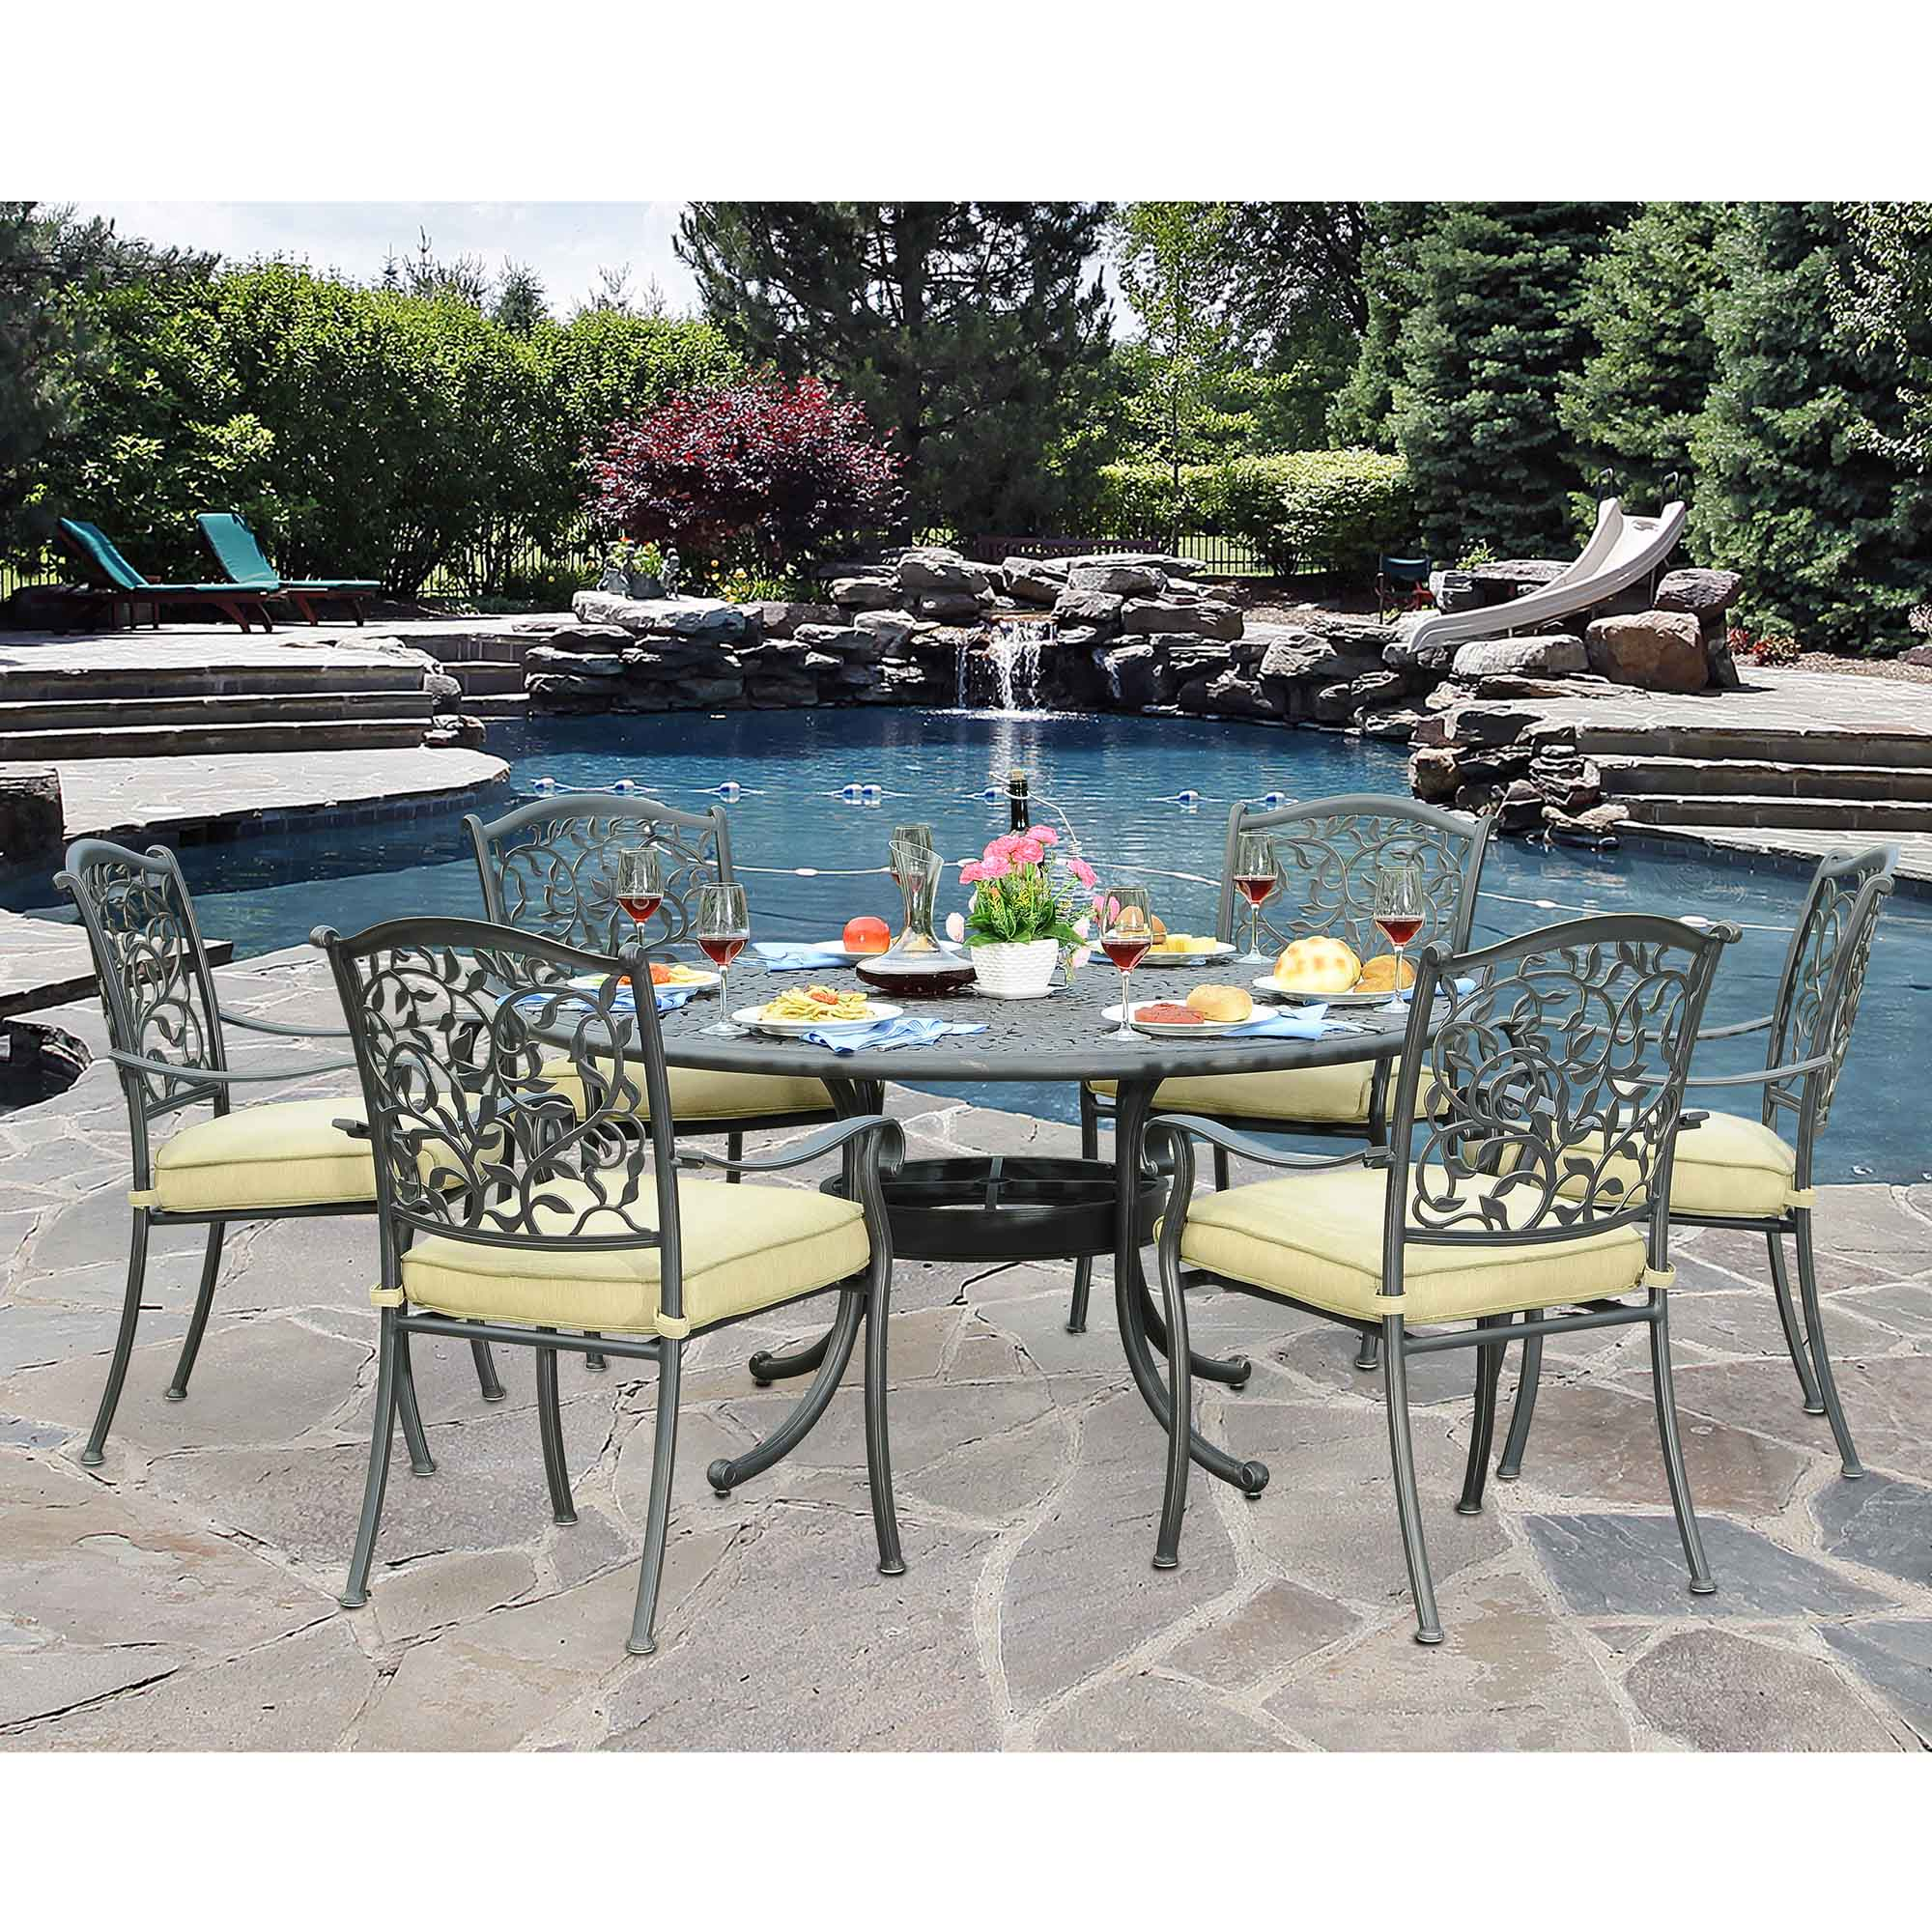 7 Piece Round Patio Dining Set Sunjoy Poppy 7pc Patio Dining Set With Round Table